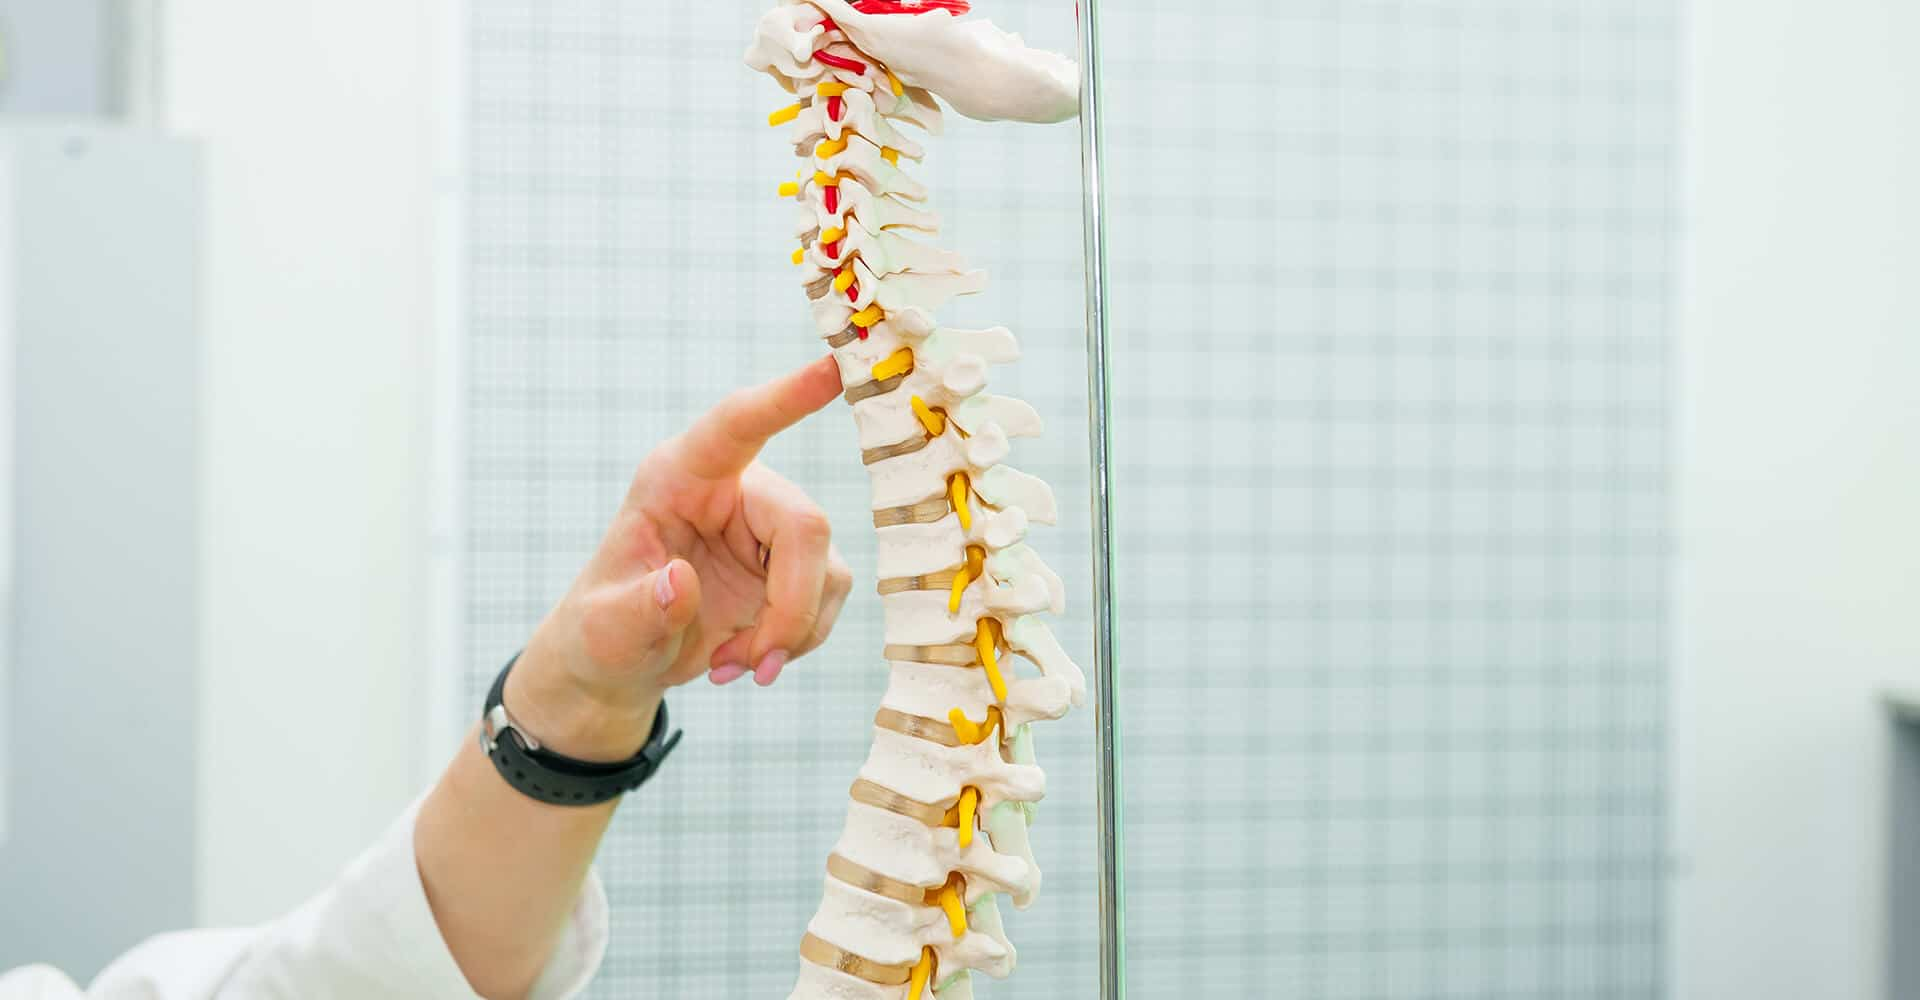 doctor pointing to spine